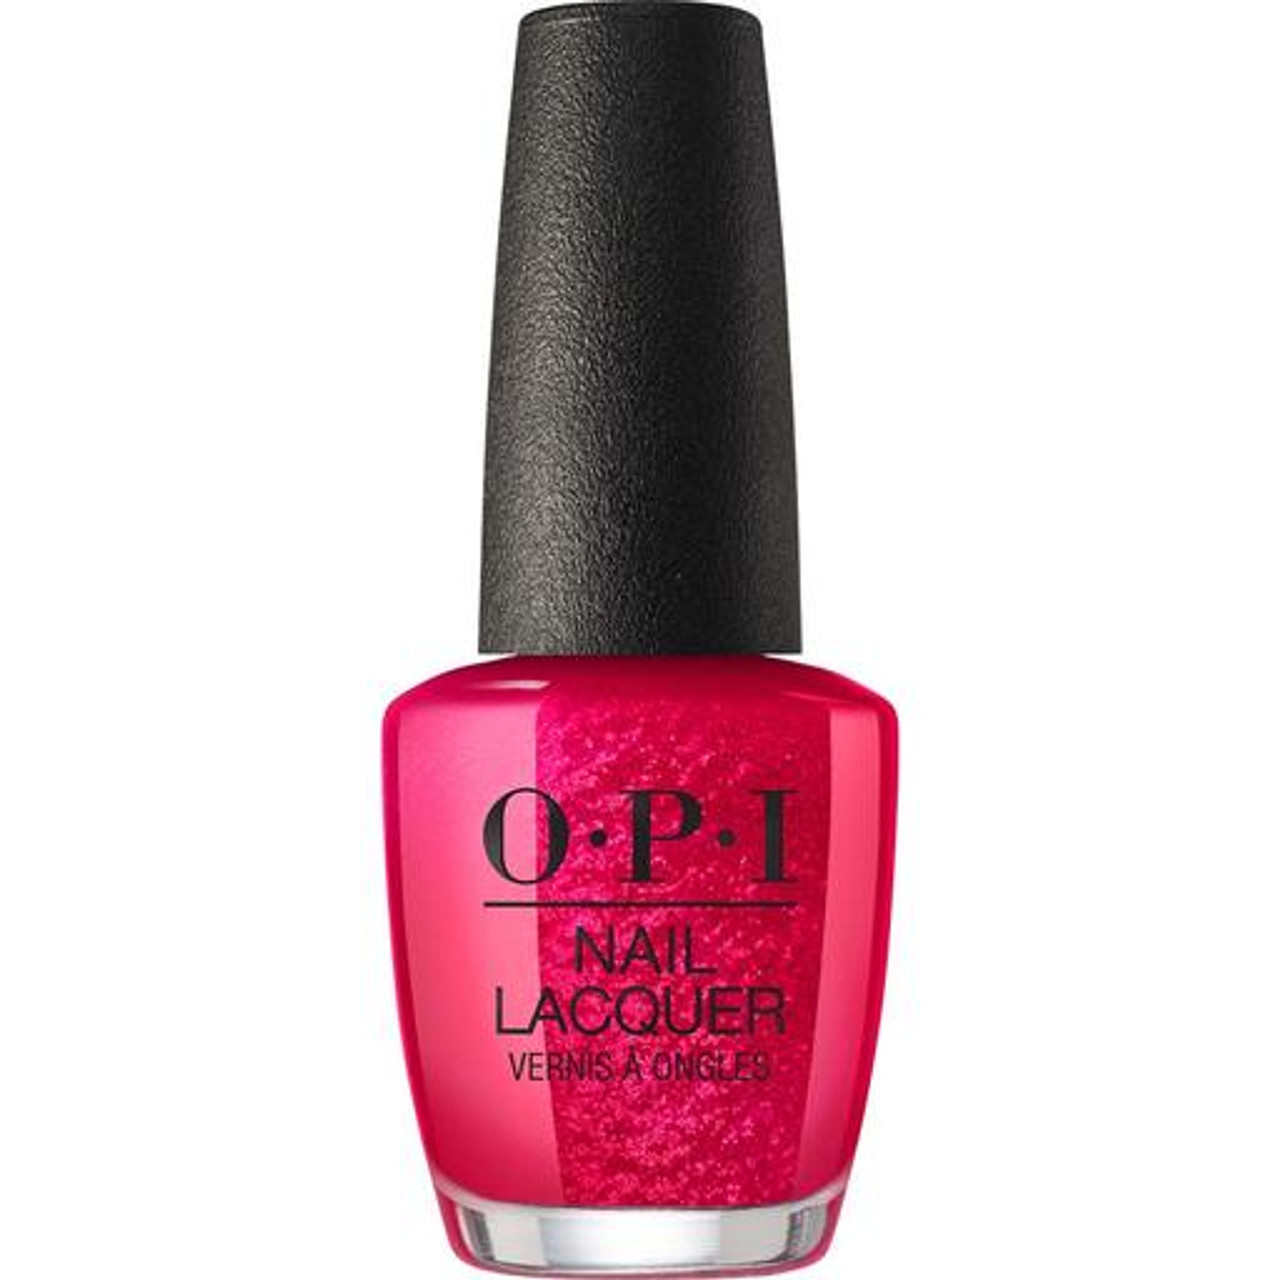 OPI Scotland Limited Edition Nail Polish - A Little Guilt Under the Kilt 15 mL  Channel your inner sassy lassie with OPI's Limited Edition Scotland Collection, inspired by the bonny hues of Caledonia. Comprising a vast range of pure braw shades to make your wee tips pop, the salon-grade nail polish formula glides smoothly over nails, evenly coating them in bold, glossy, chip-resistant color that lasts for up to 7 days.